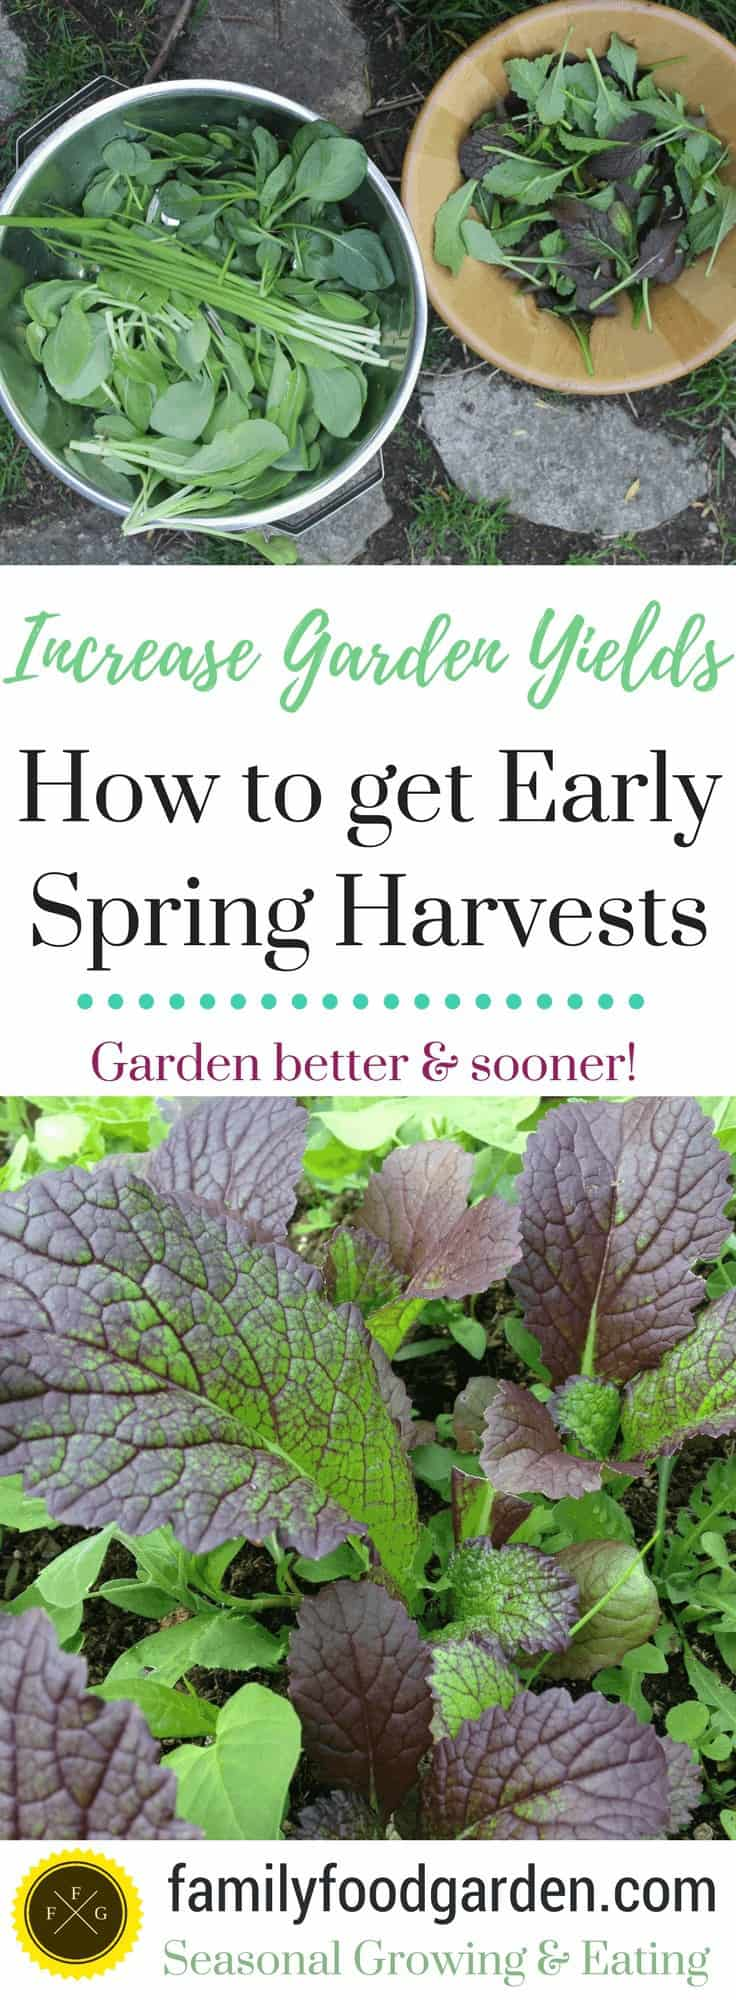 Spring Gardening to get Early Spring Harvests